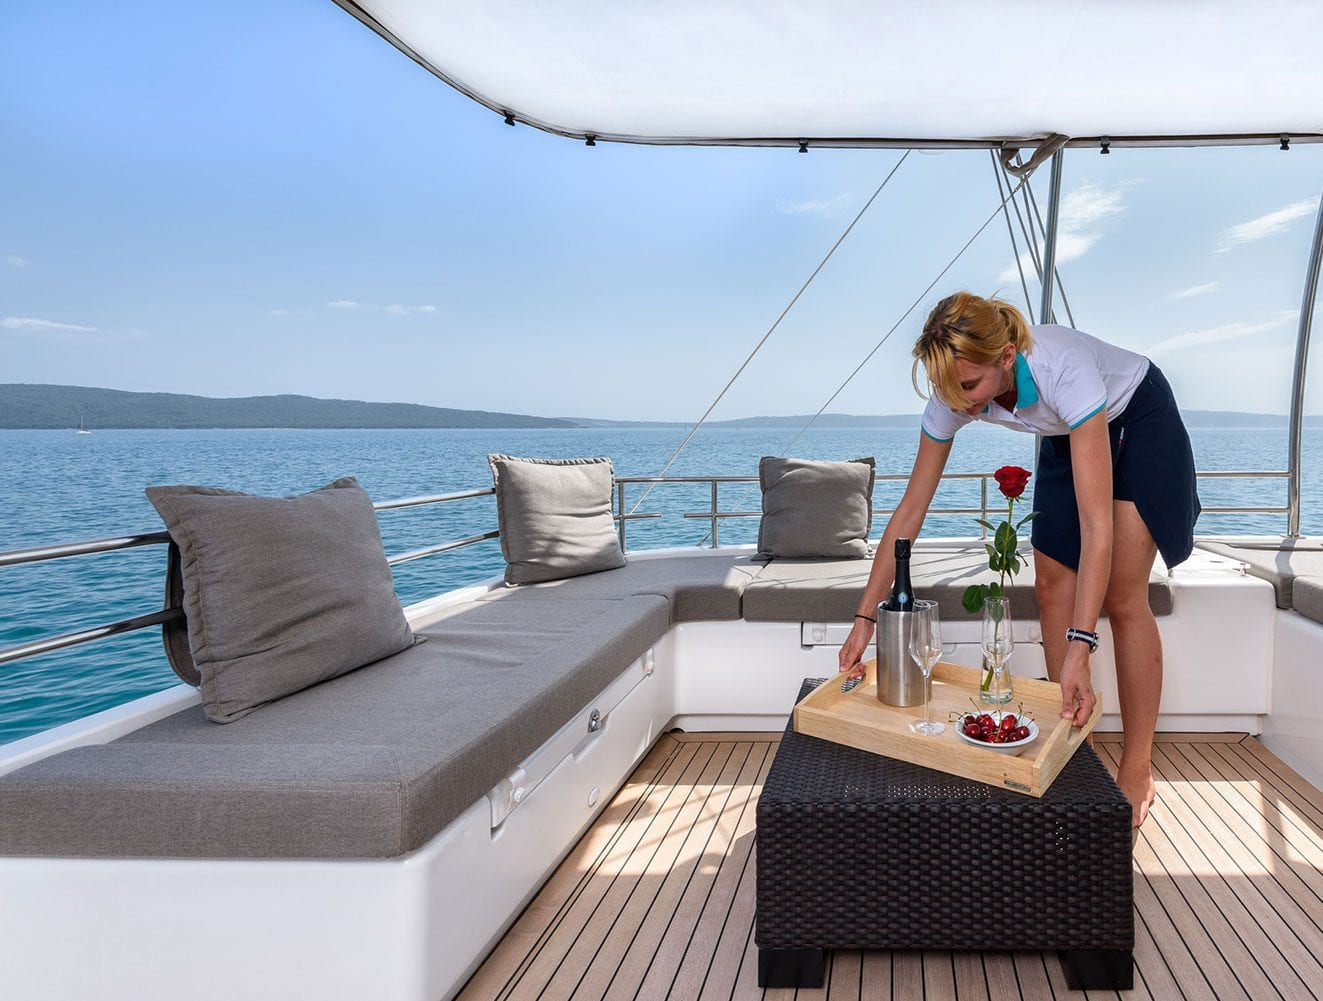 Hostess on a Crewed Yacht Charter